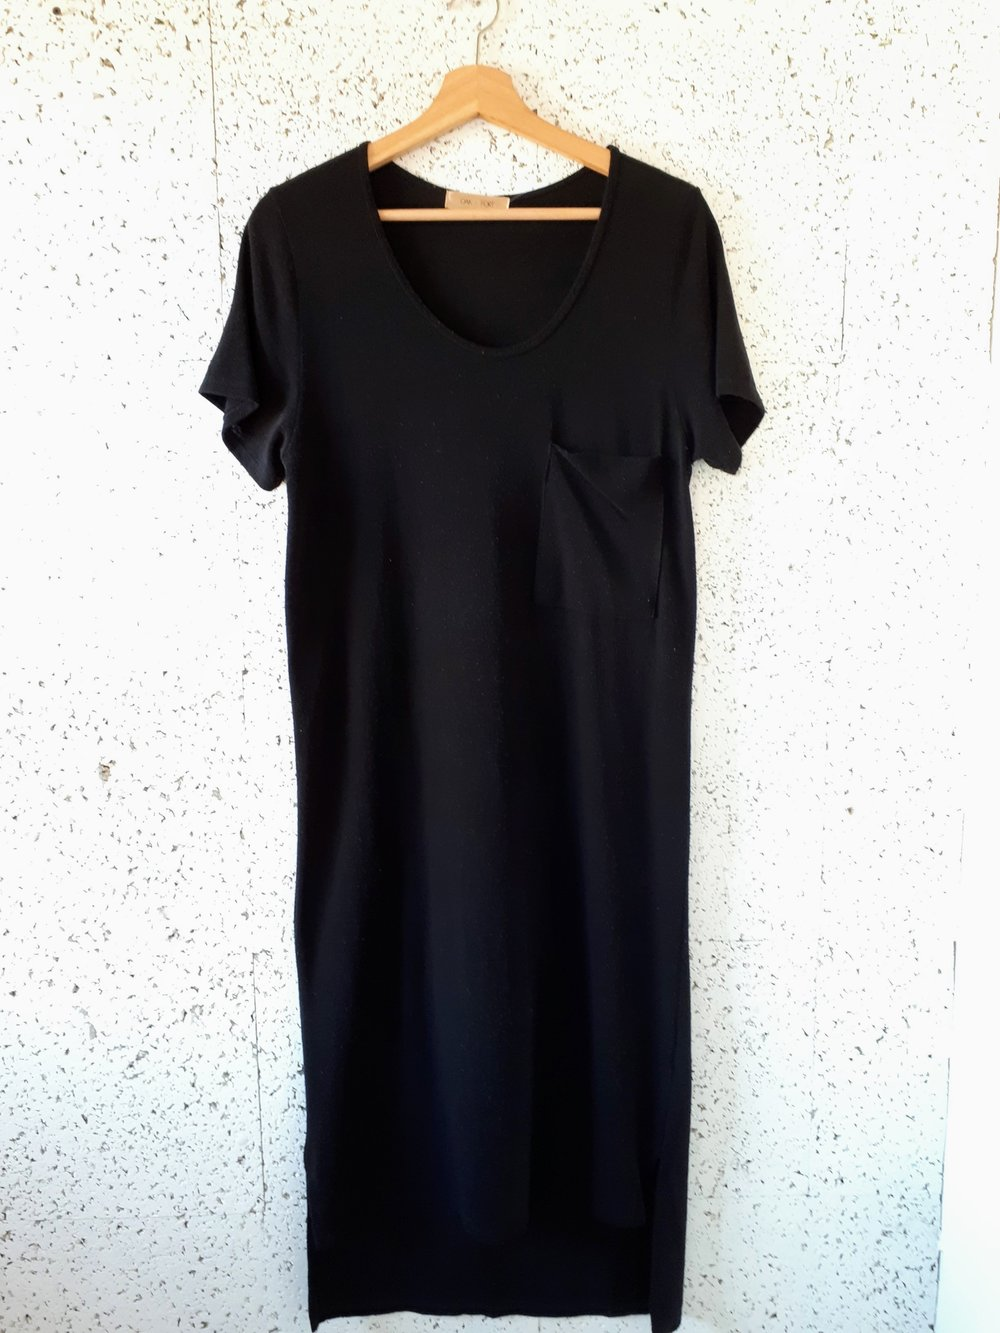 Oak + Fort dress; Size M, $45